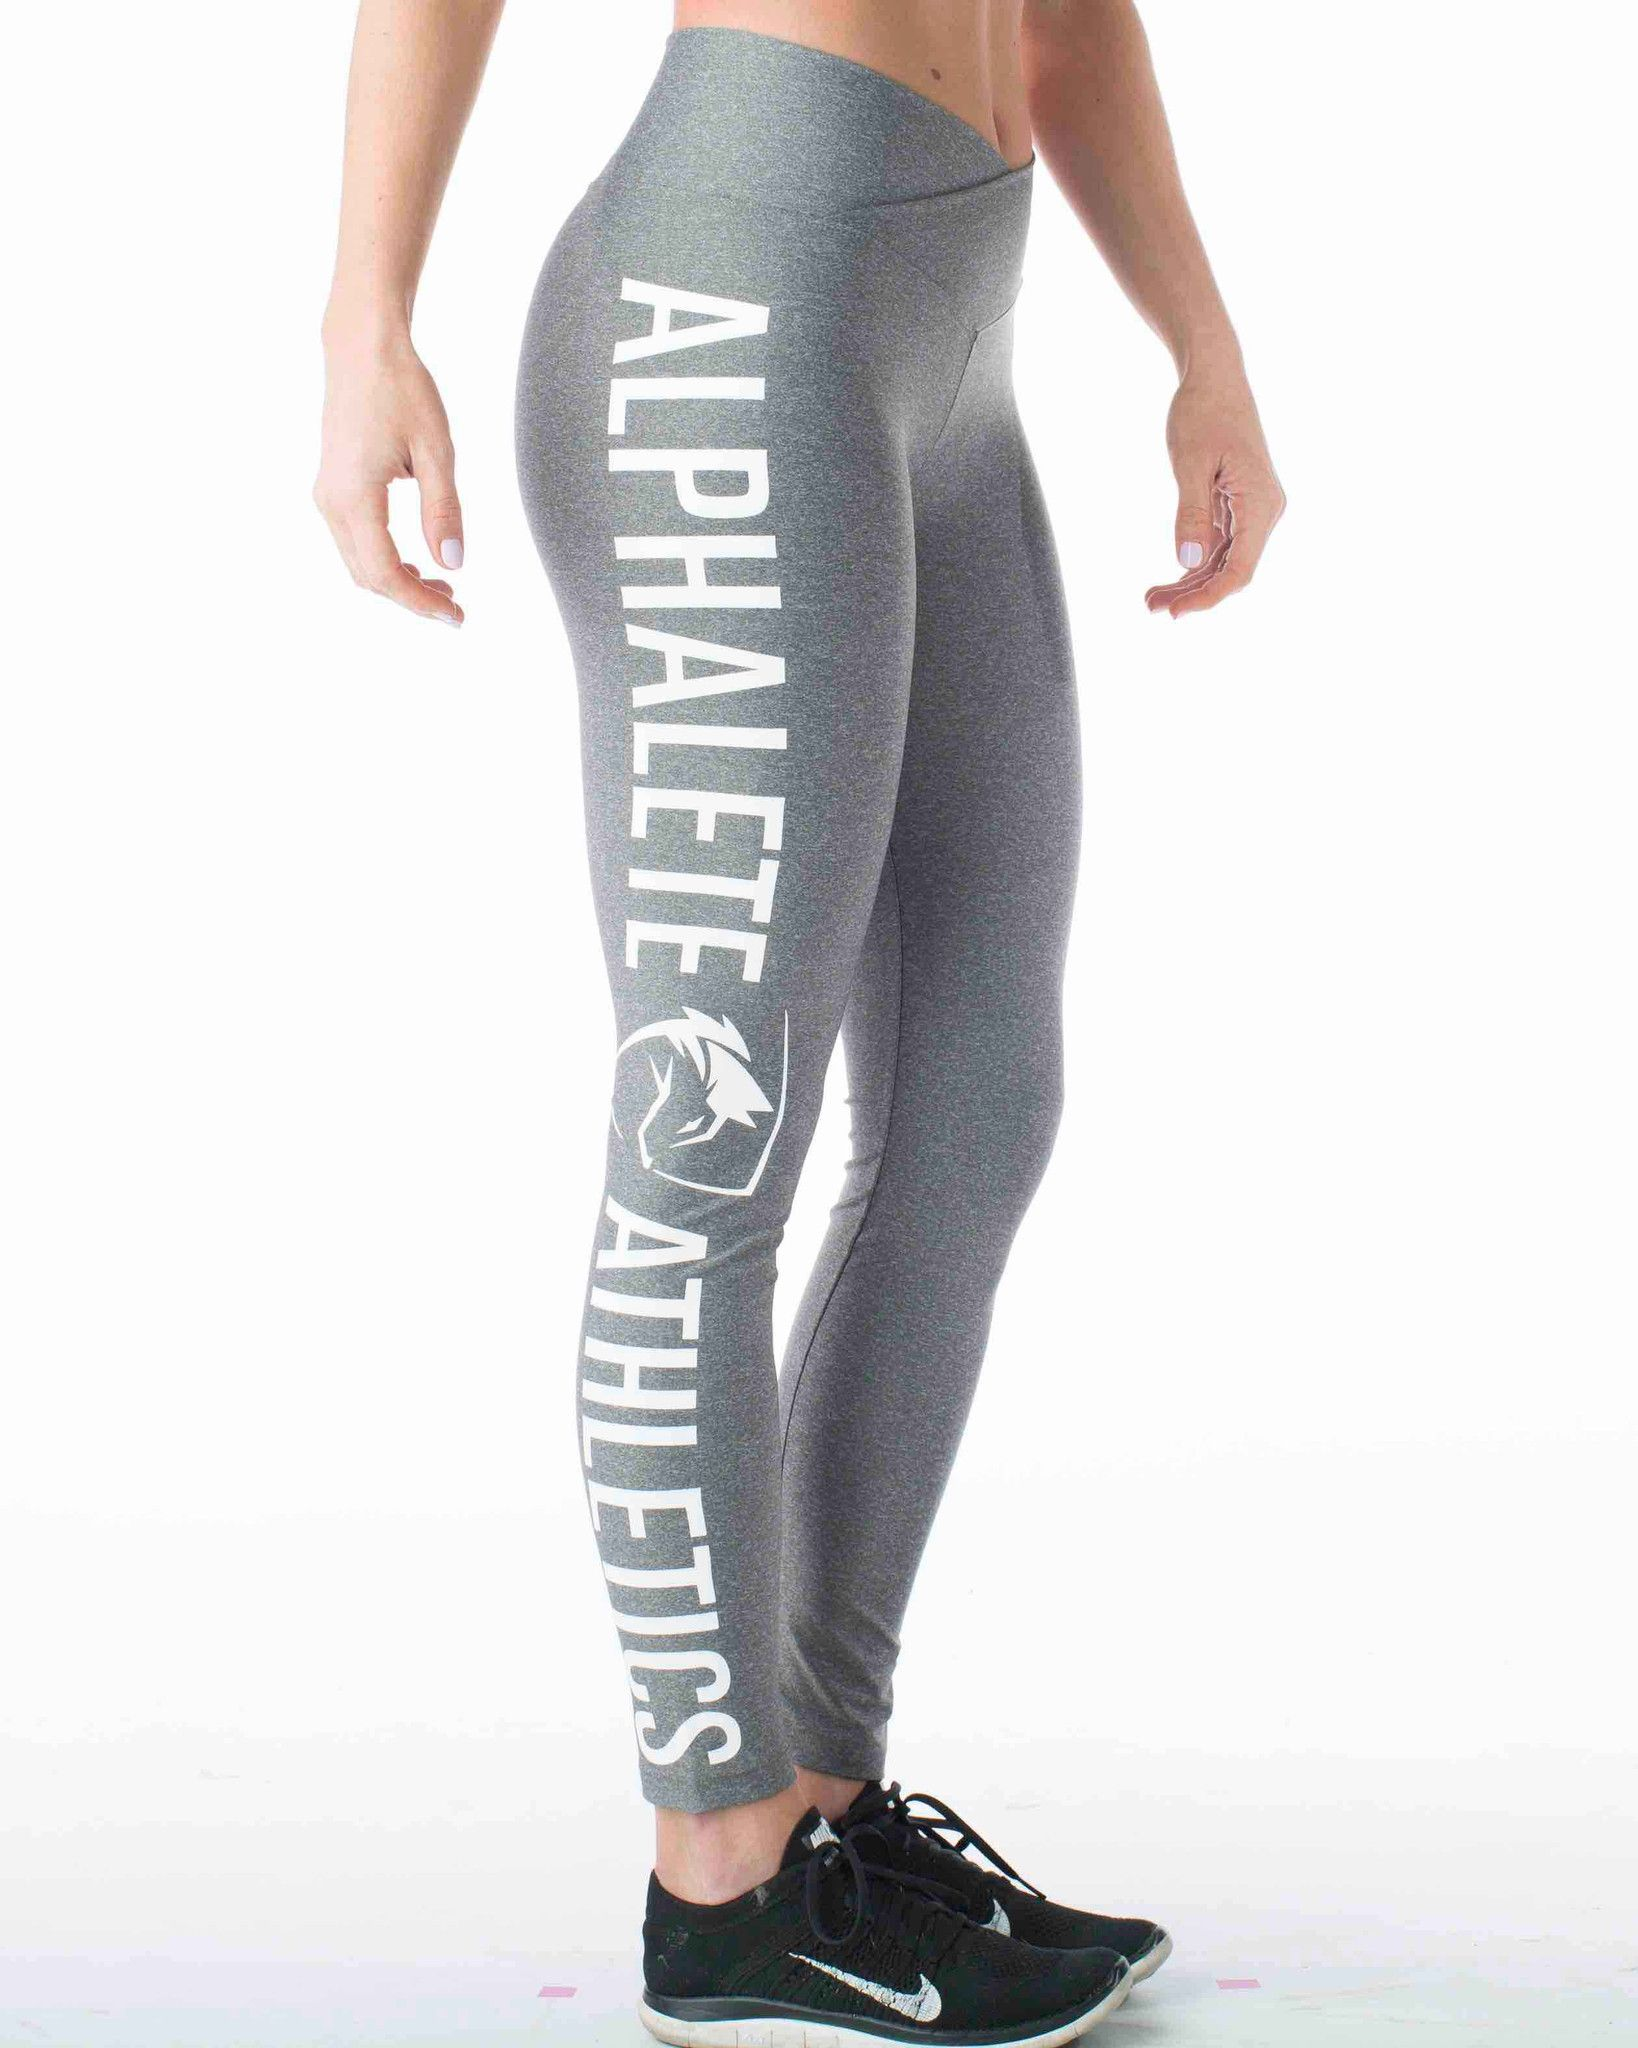 5c9ed77ed8730 Women s V-Cut Leggings - Gray  Heathered from Alphalete Athletics ...